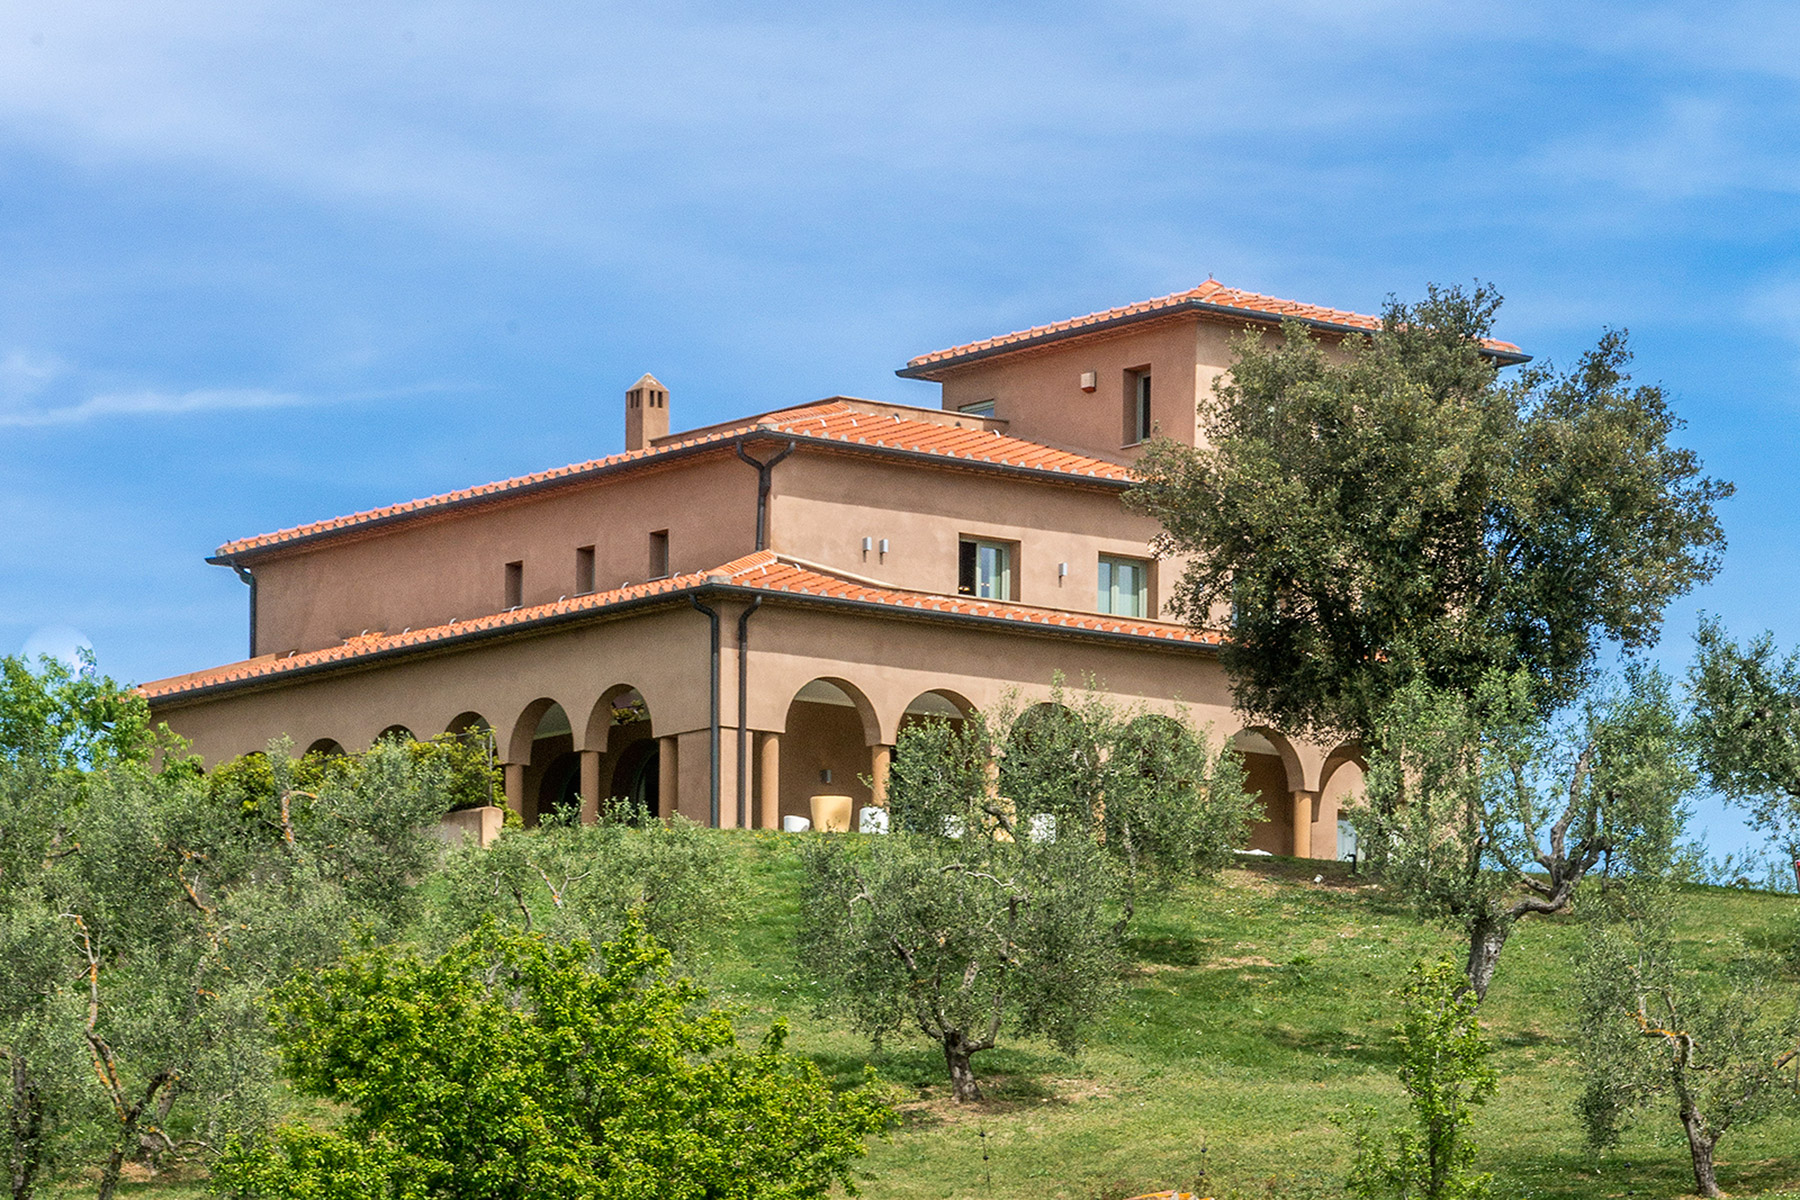 Additional photo for property listing at Unique luxury contemporary villa in an olive grove estate Massa Marittima, Grosseto Italia